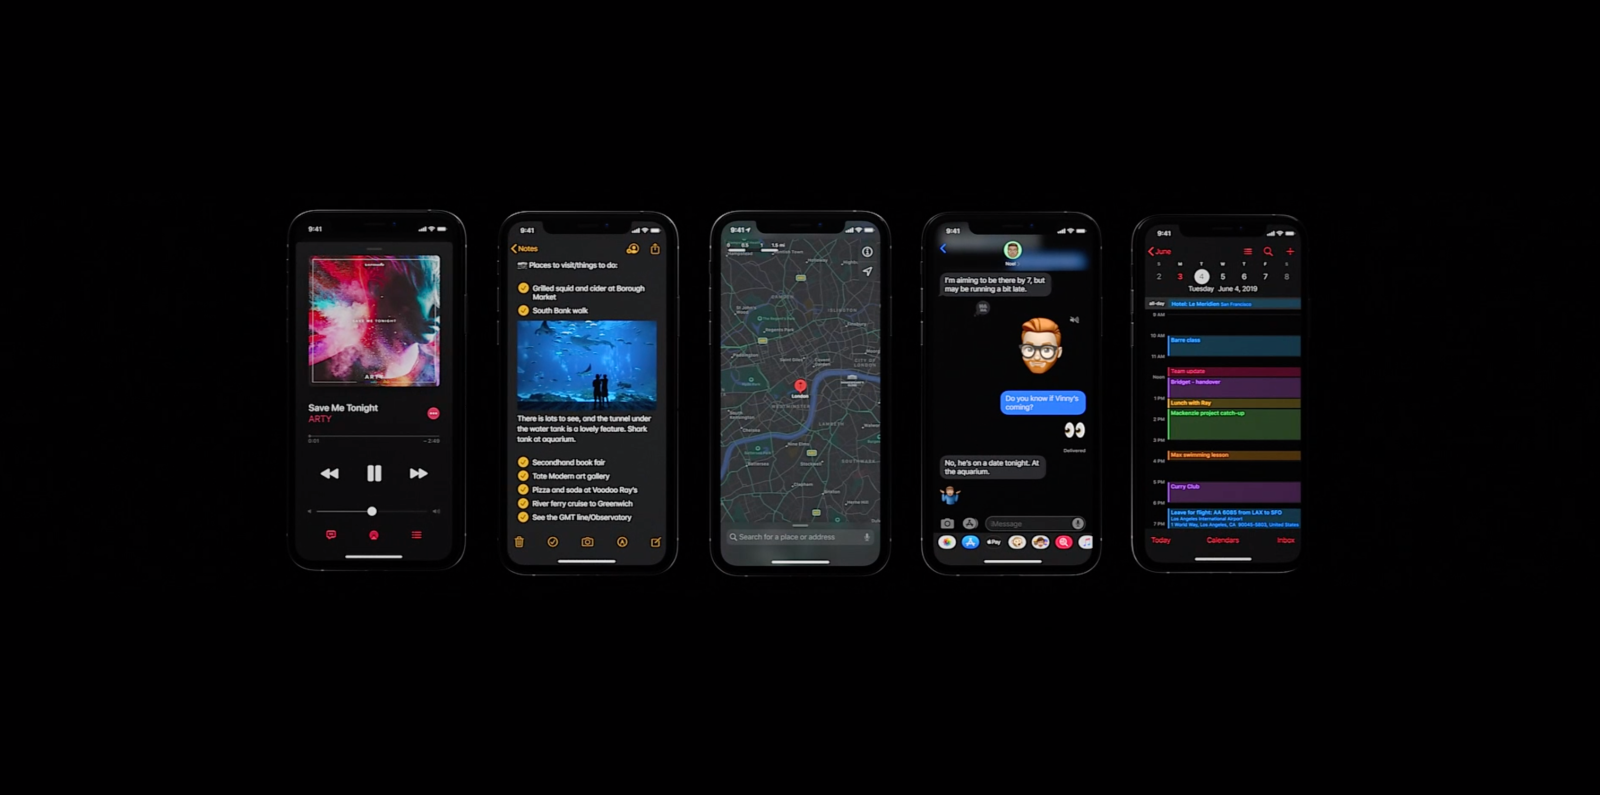 [Update: Now available] Here are all of the iPhones and iPads that support iOS 13 and iPadOS 13